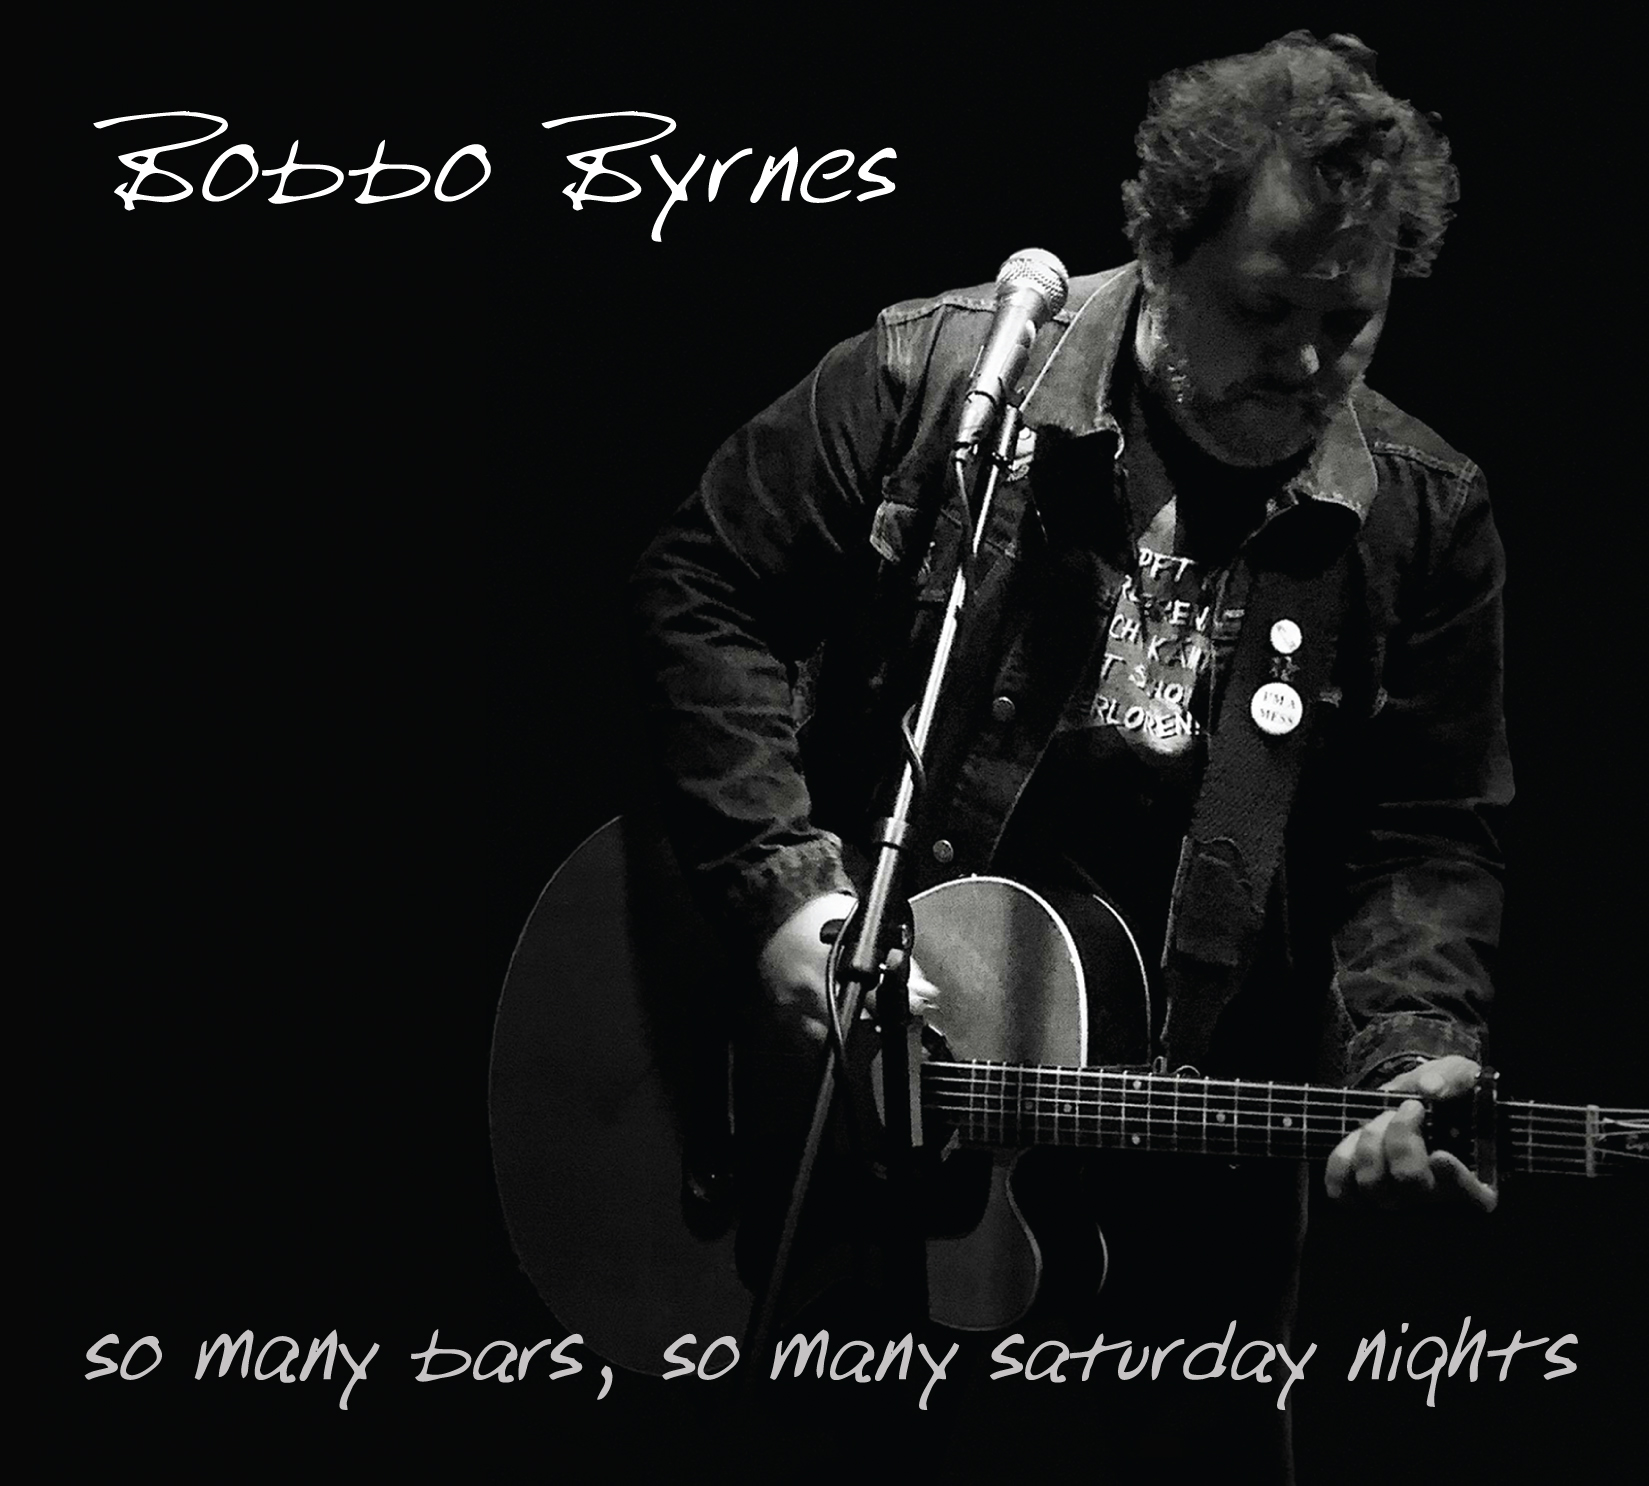 """""""Bobbo Byrnes"""" - """"So Many Bars, So Many Saturday  Nights"""" out on Friday 01.10.2021 - European Tour booked for September 2021!!"""